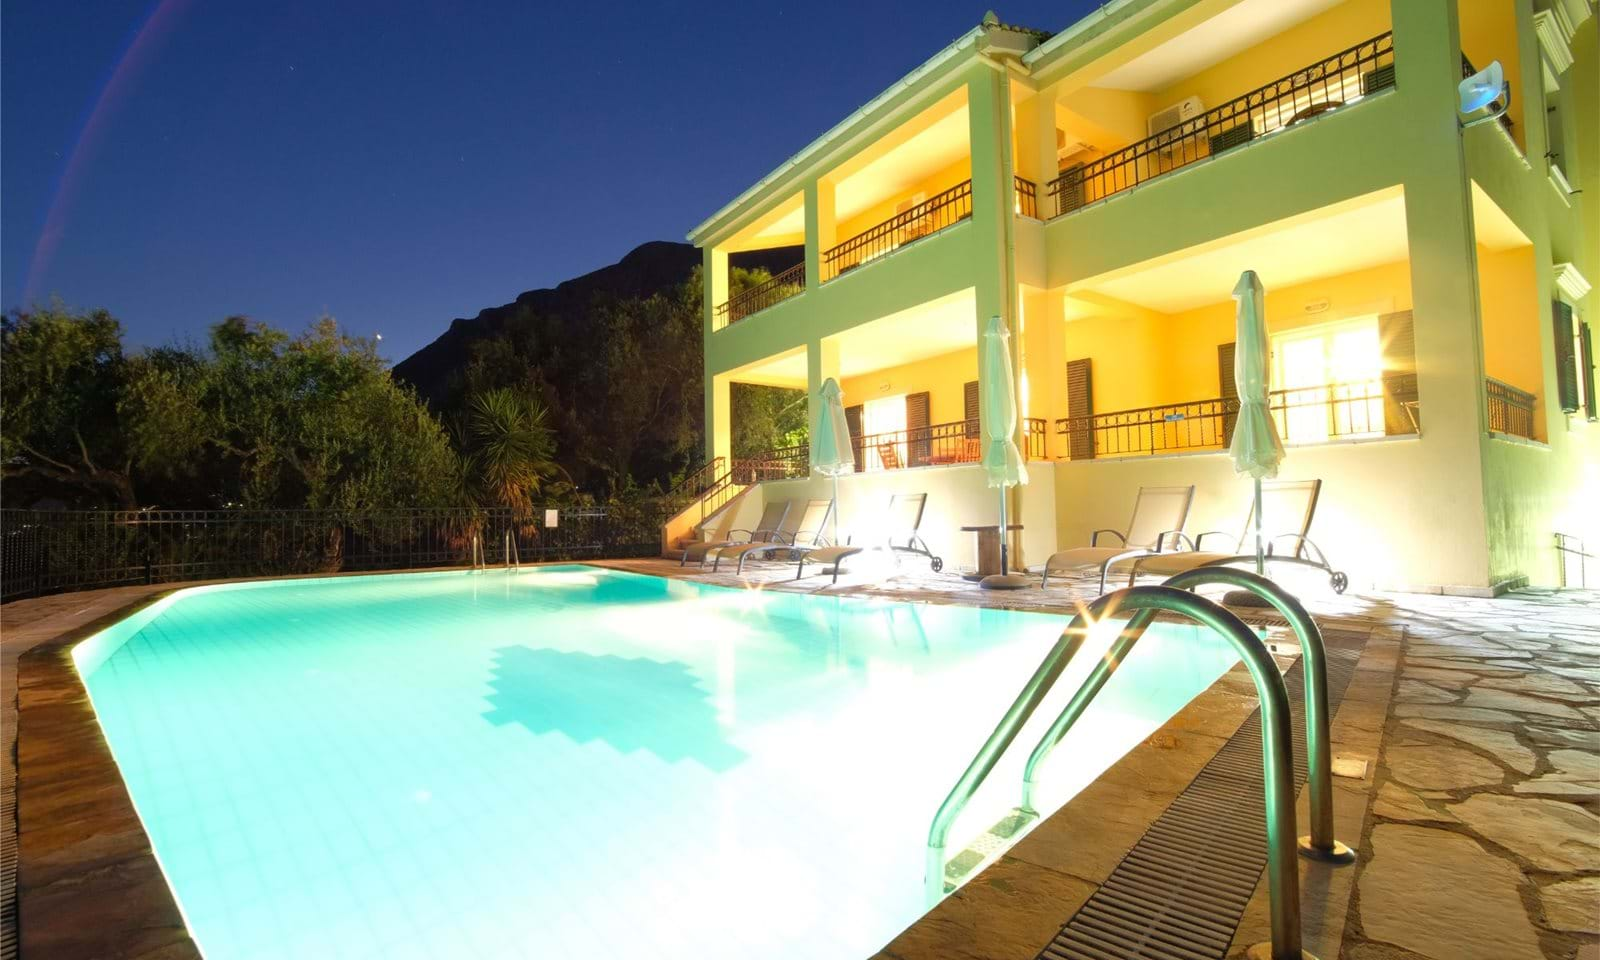 Villa and swimming pool at night